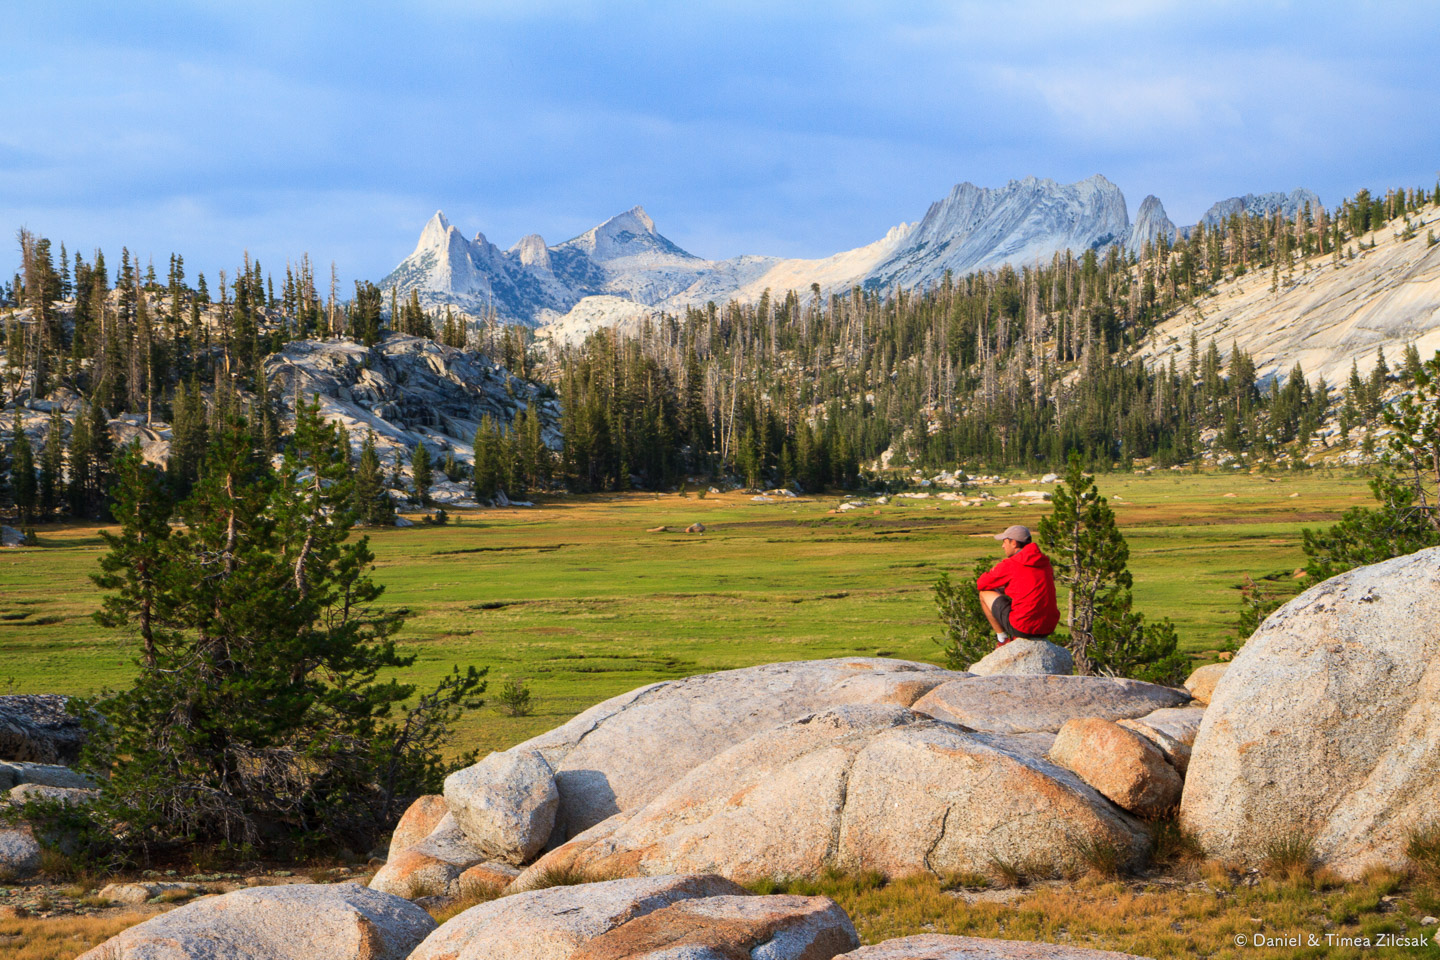 Cathedral Range from Sunrise meadows, Yosemite National Park